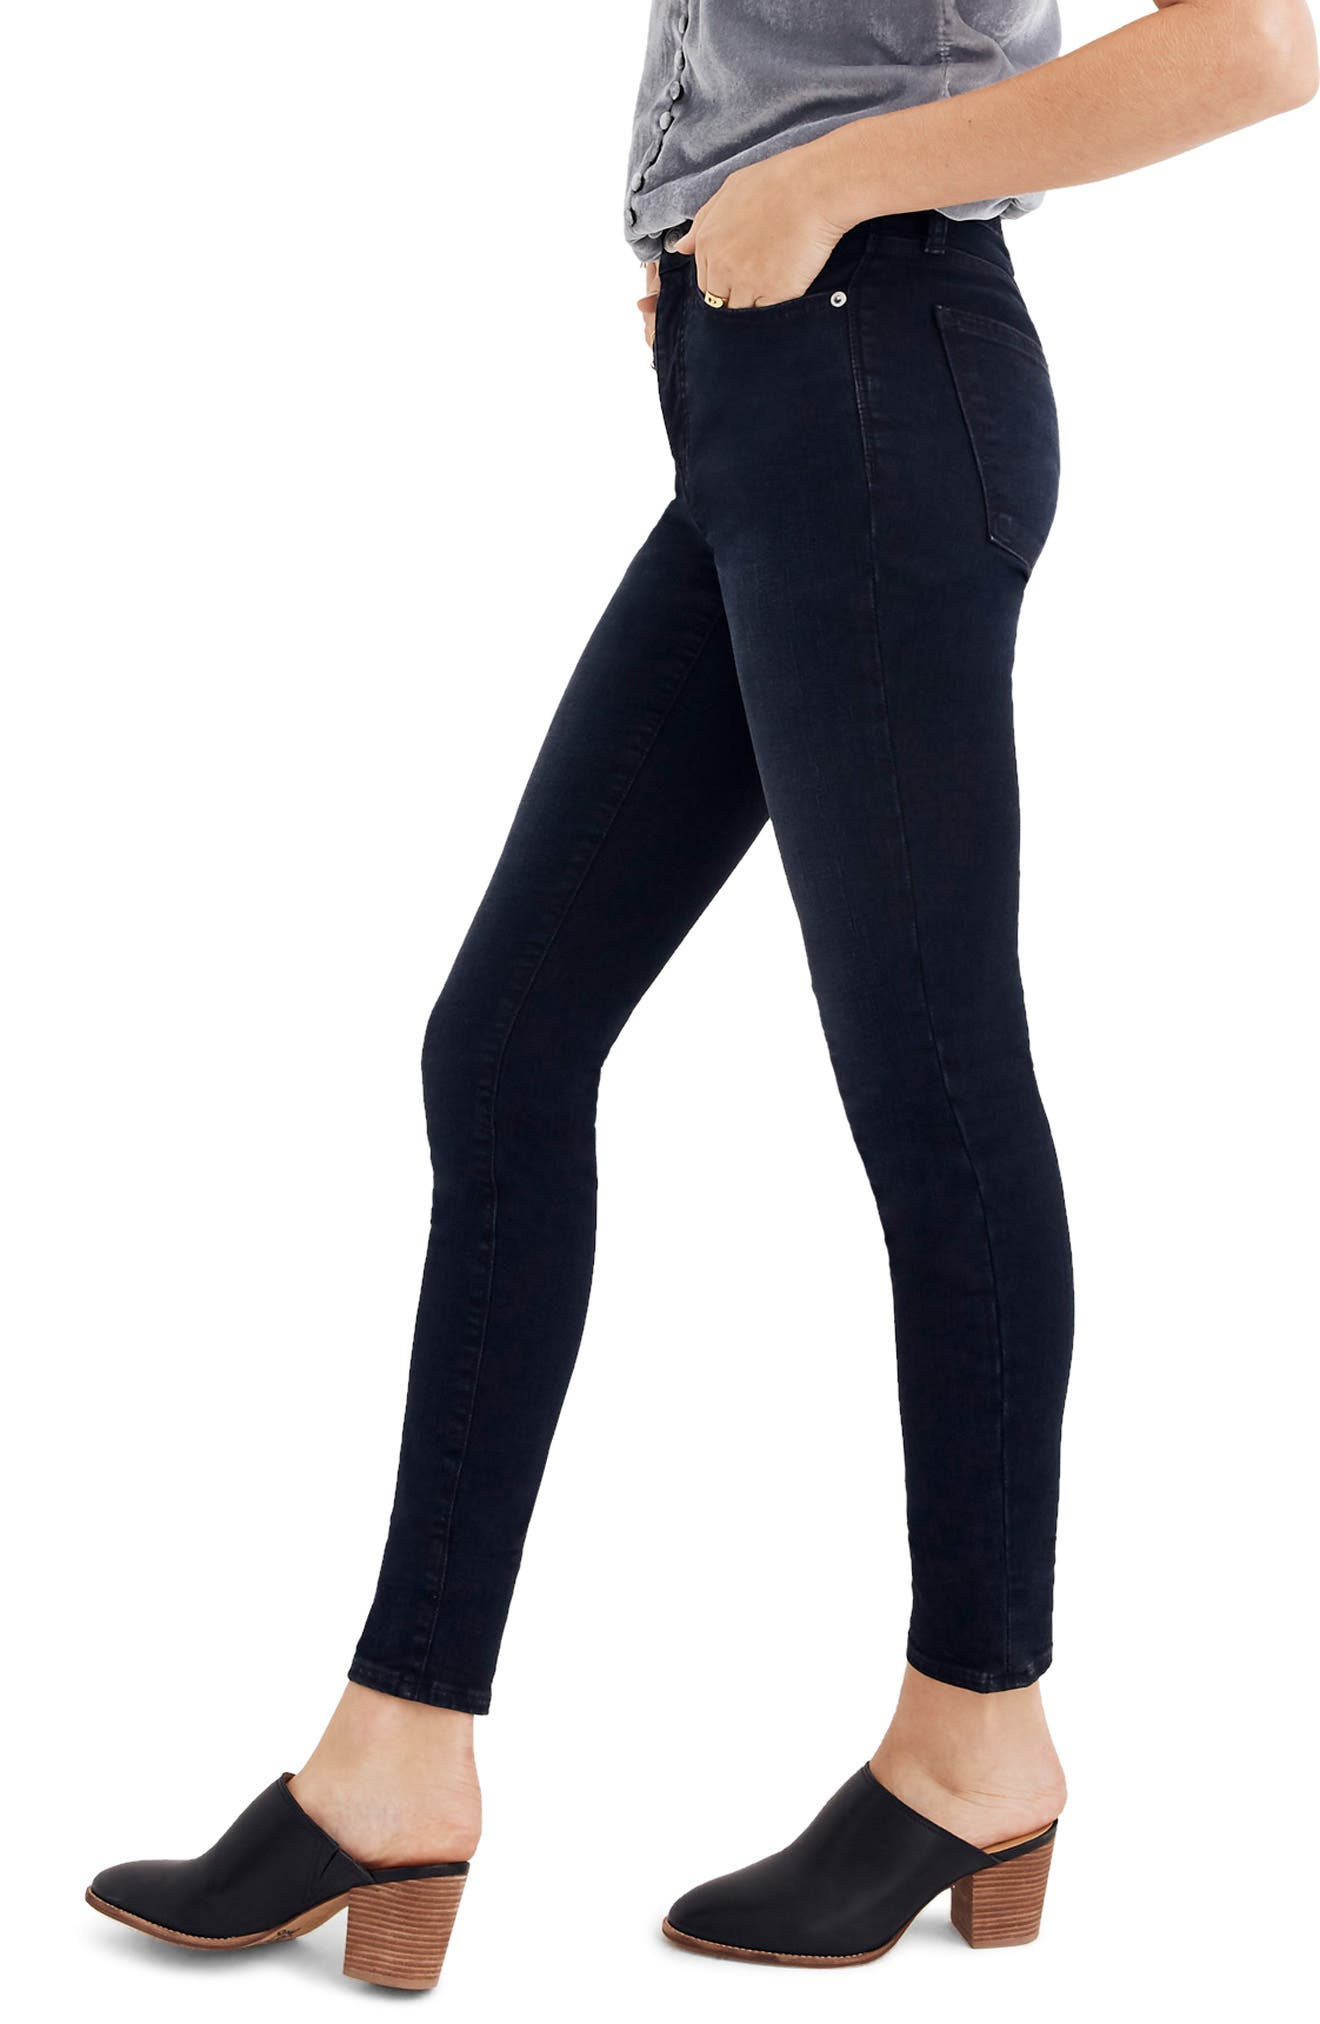 9-Inch High Waist Skinny Jeans,                             Alternate thumbnail 3, color,                             COLD BLUE